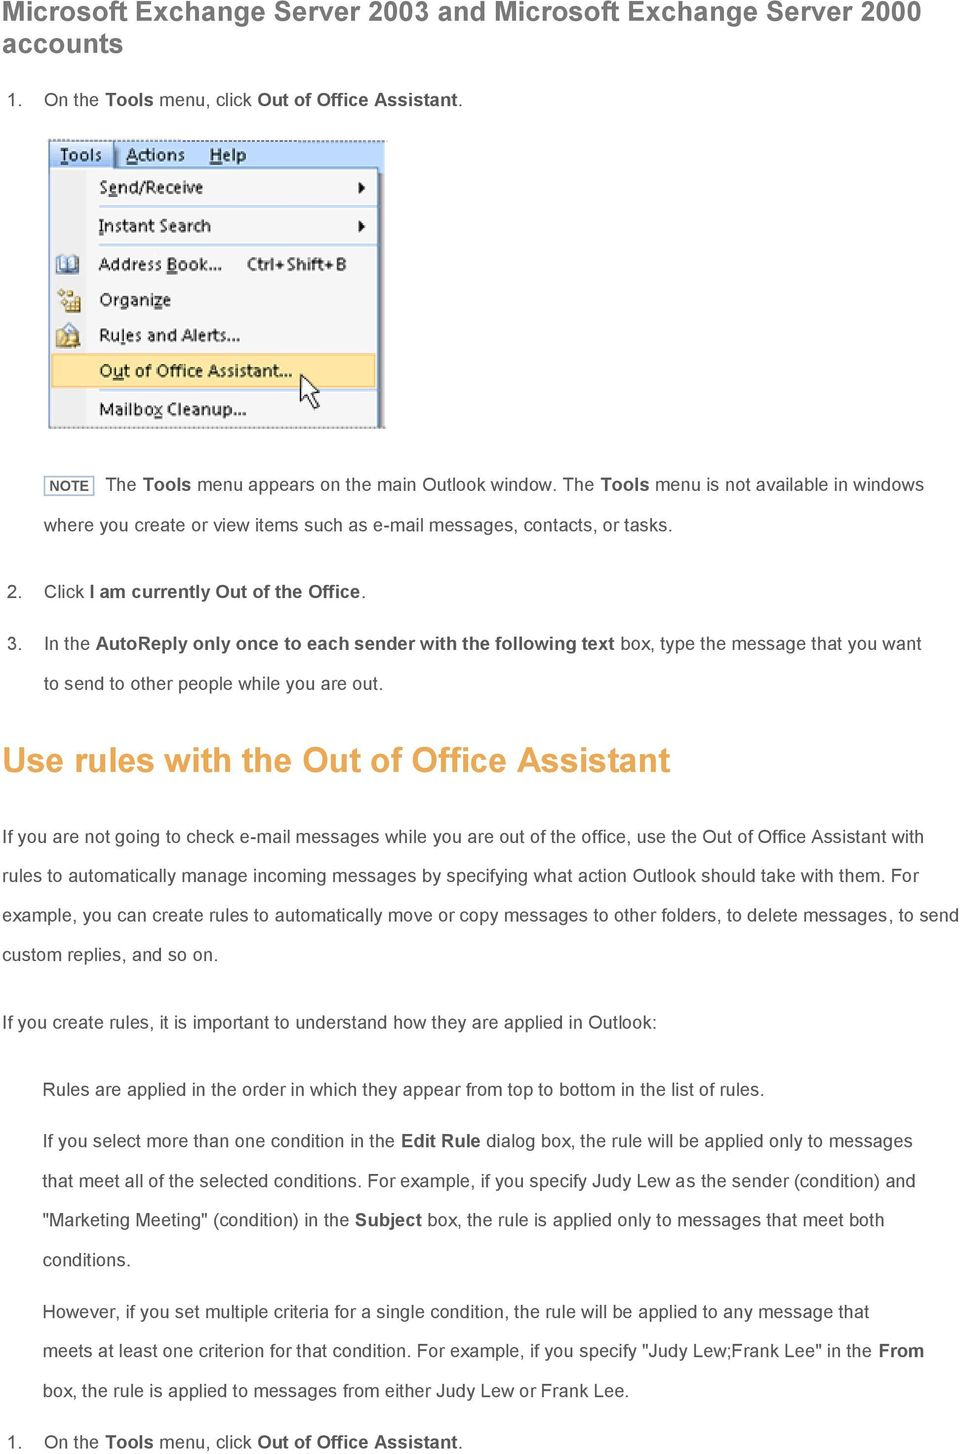 Use rules with the Out of Office Assistant If you are not going to check e-mail messages while you are out of the office, use the Out of Office Assistant with rules to automatically manage incoming